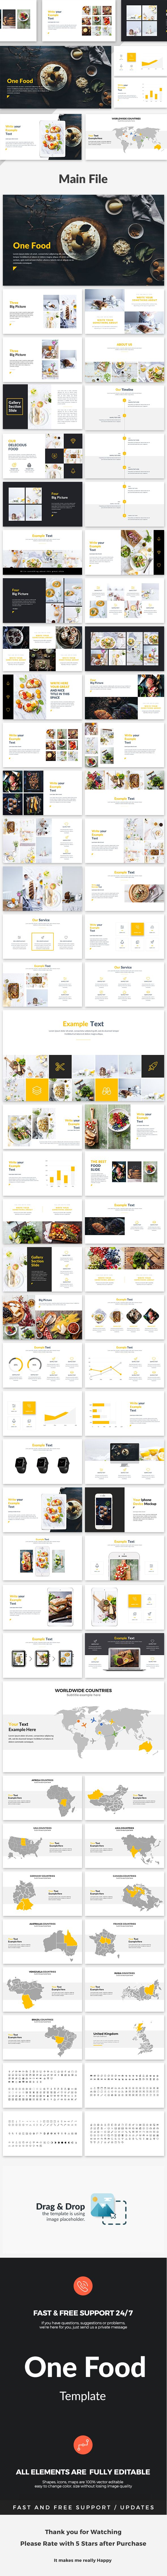 One Food Creative Keynote Template — Keynote KEY #template #powerpoint presentation • Download ➝ https://graphicriver.net/item/one-food-creative-keynote-template/18799287?ref=pxcr